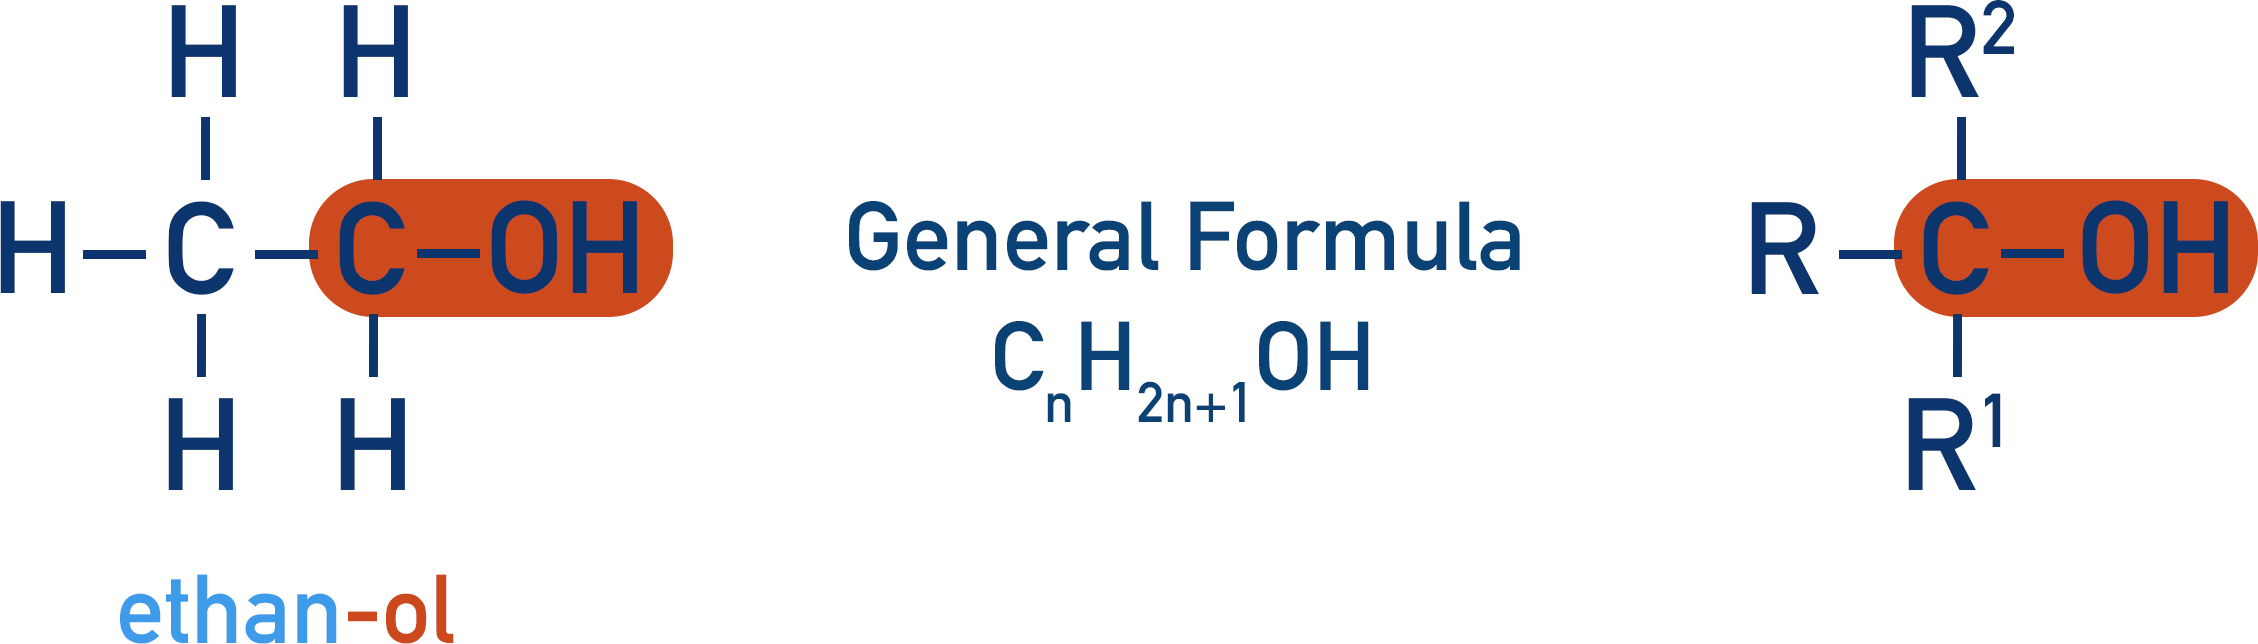 alcohol functional group general formula ethanol